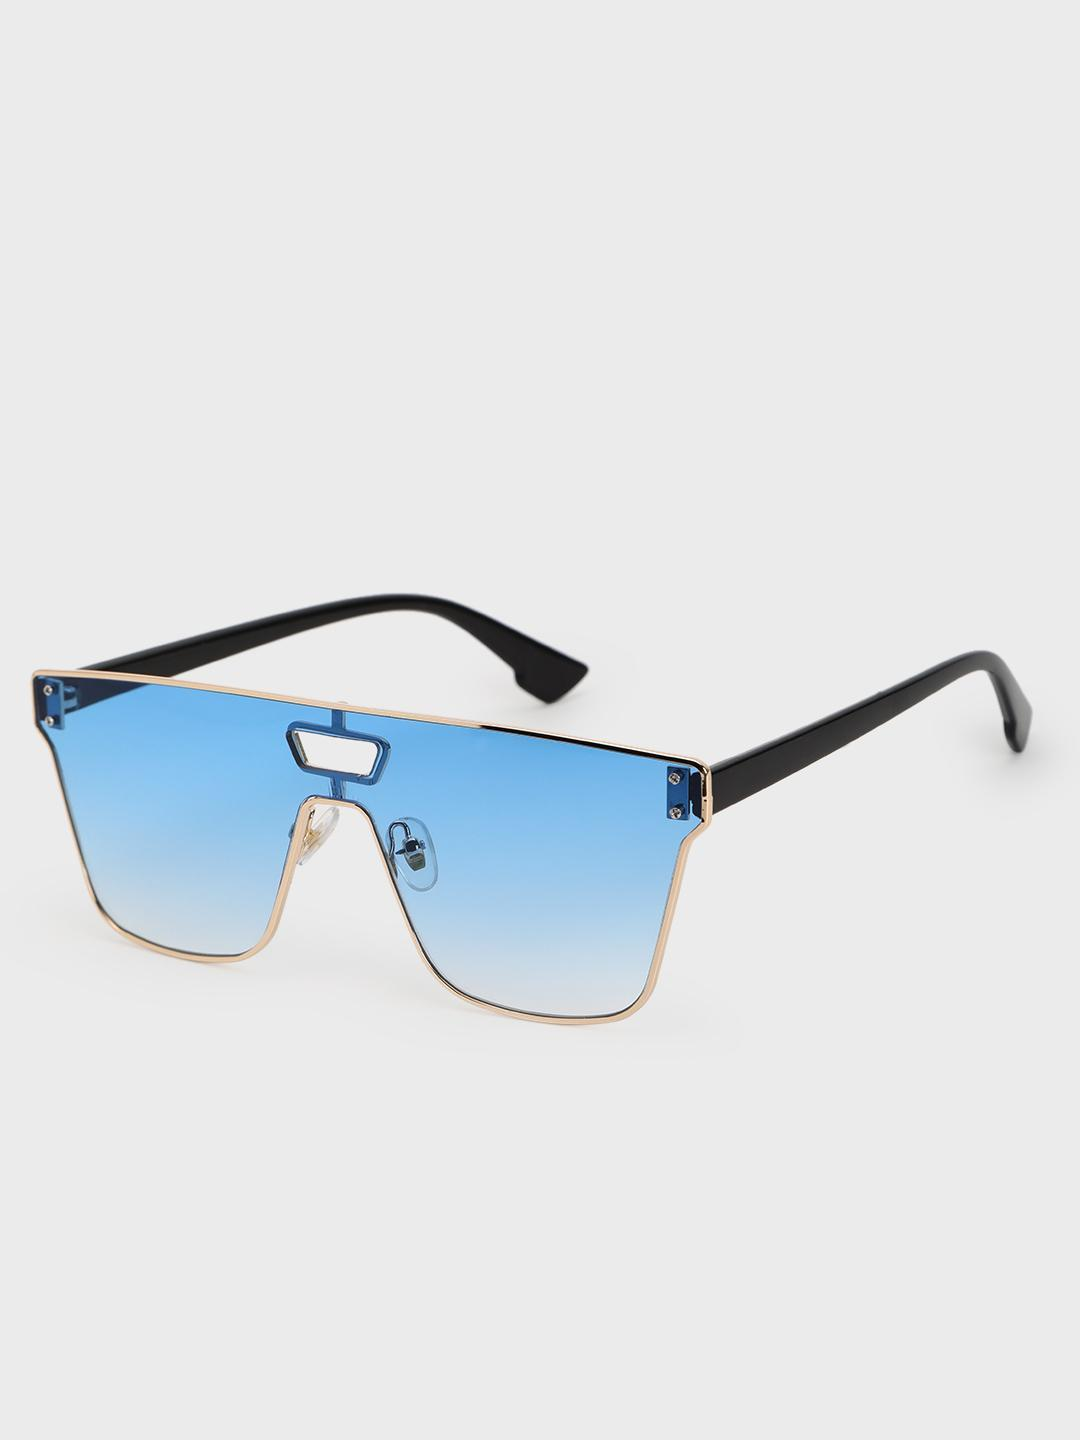 Pataaka Blue Metal Trim Frameless Classic Sunglasses 1